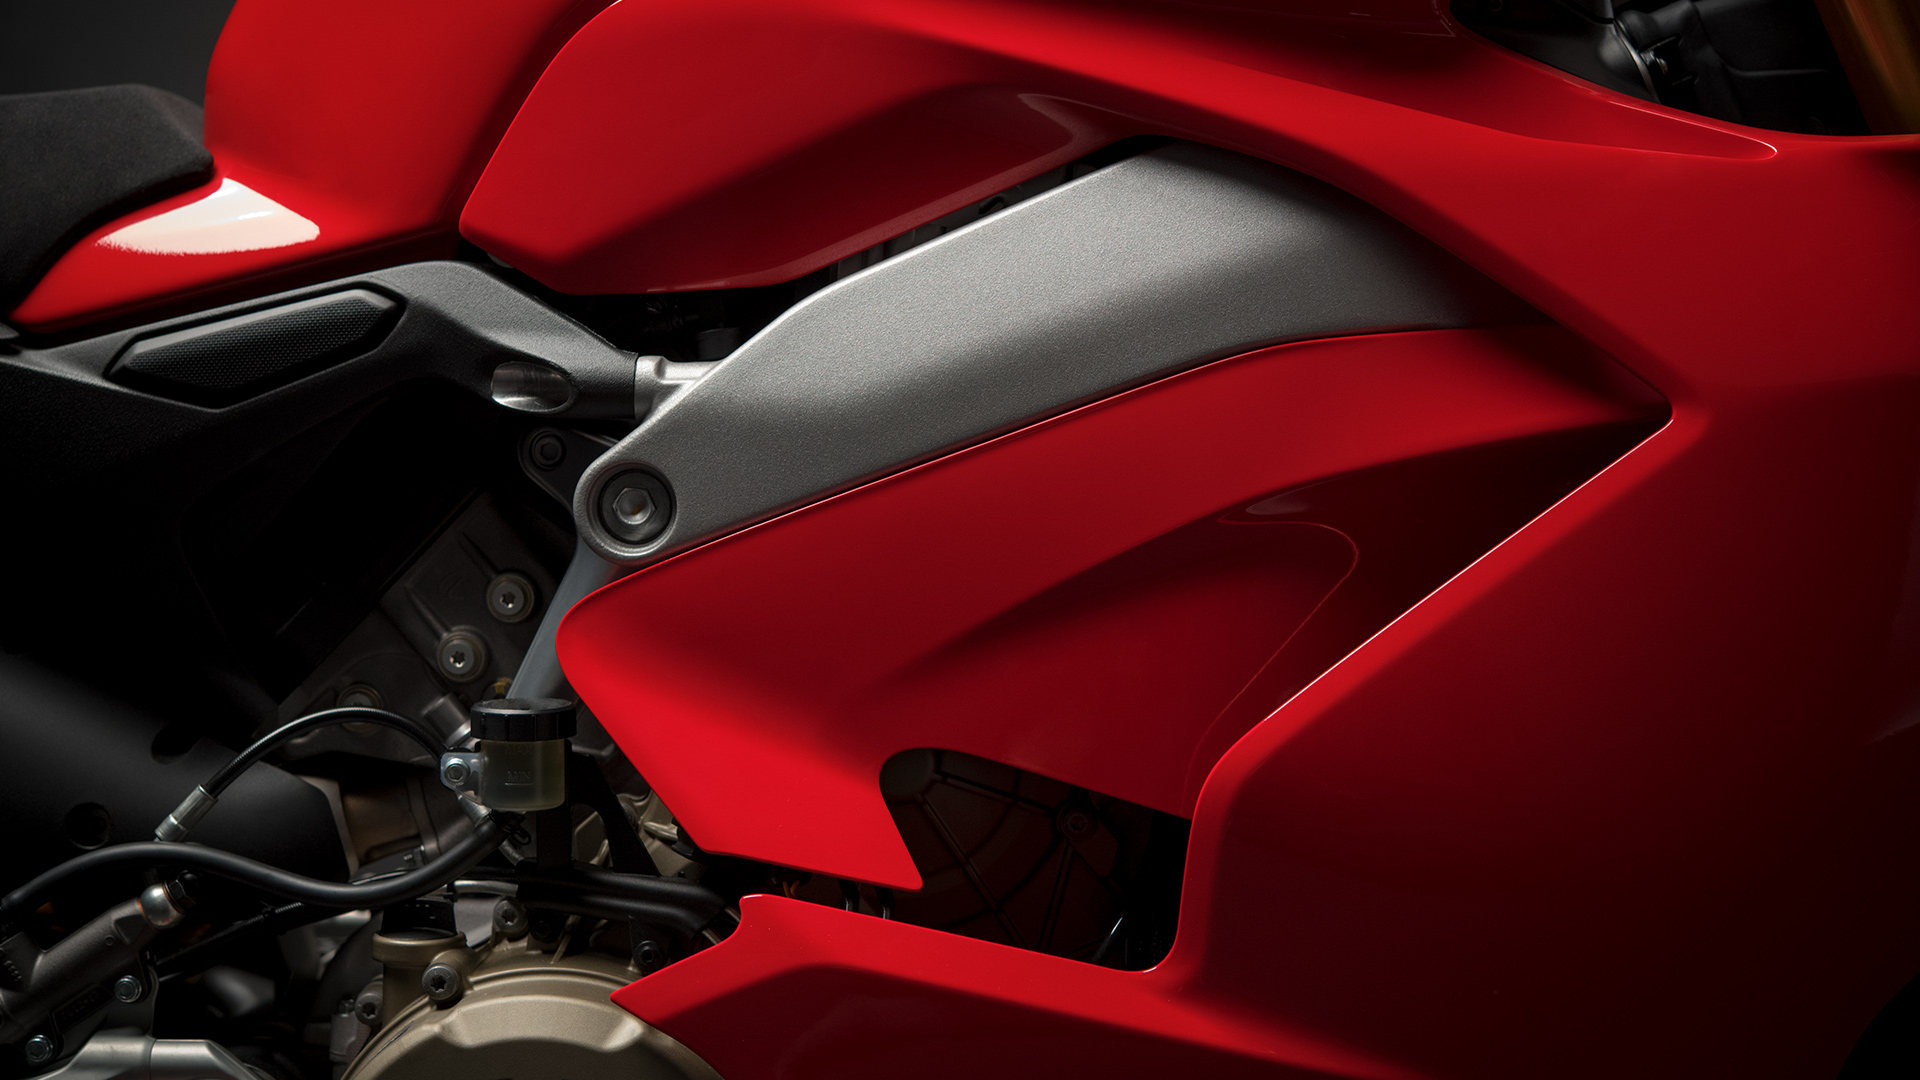 2018 Ducati Panigale V4 Top Speed